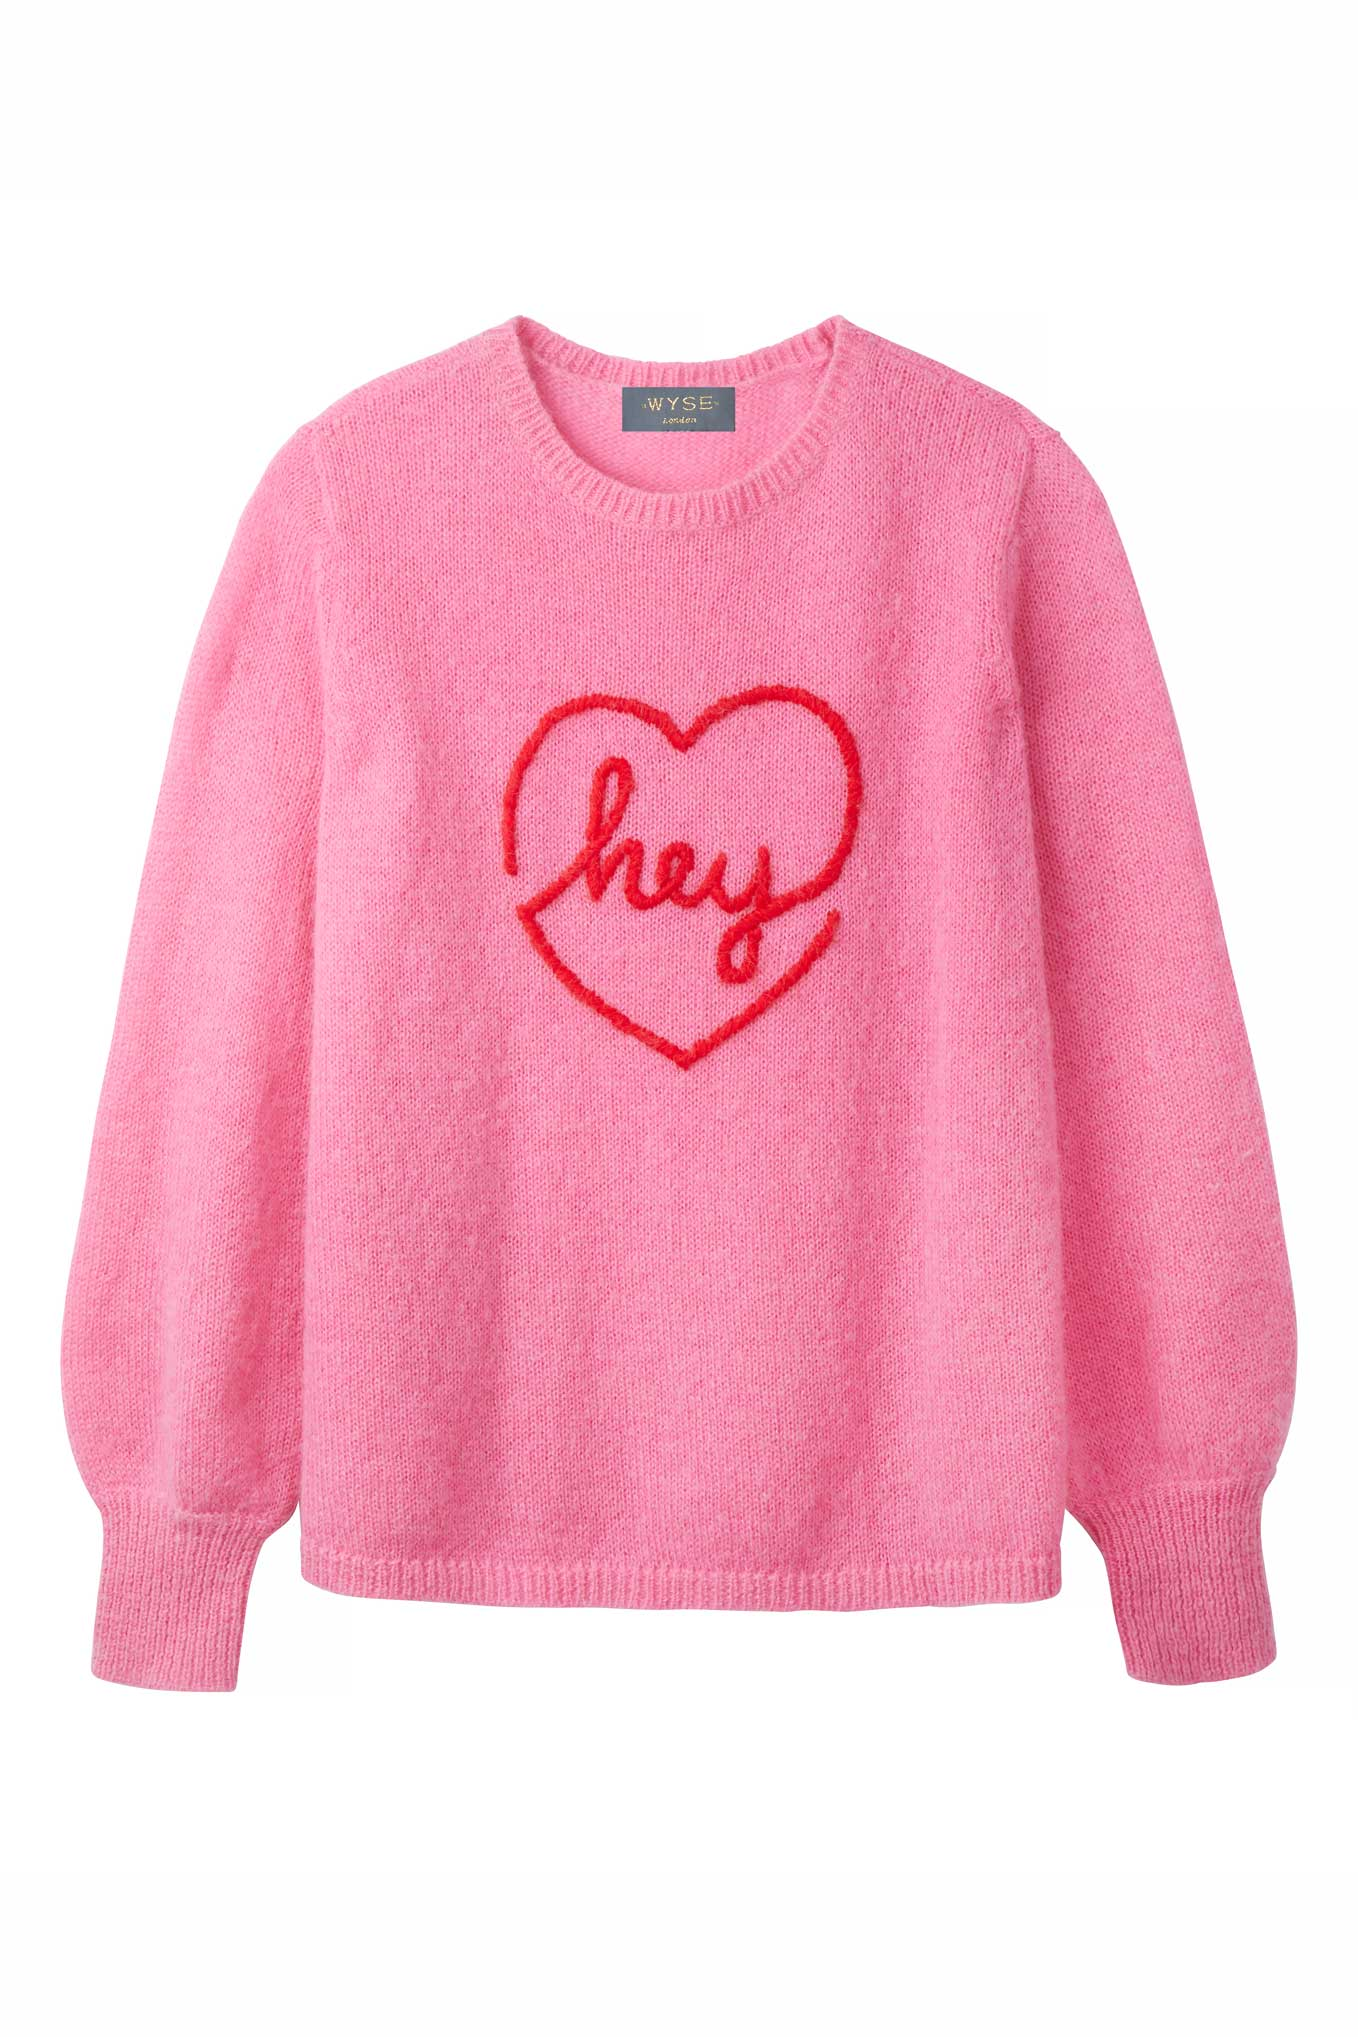 Hey Heart - Pink